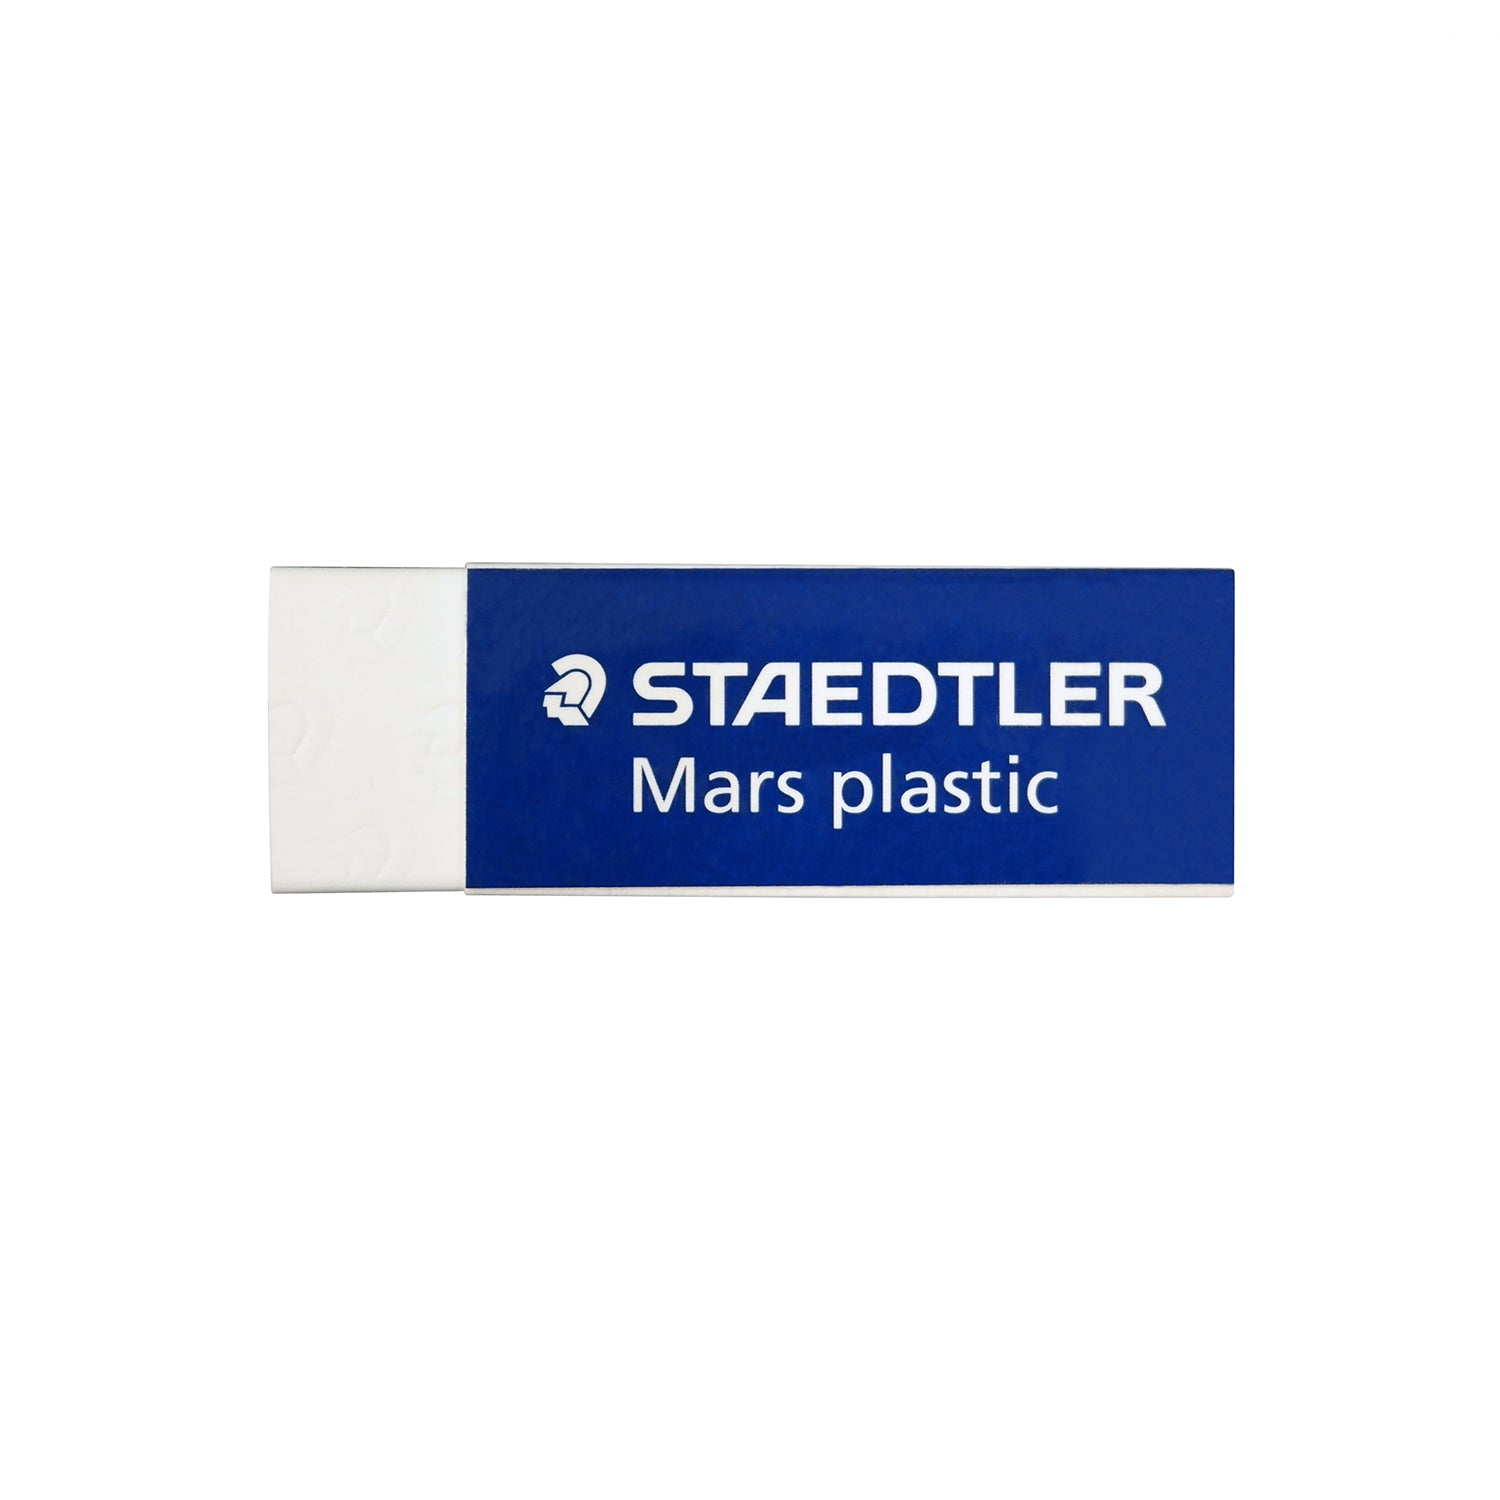 Staedtler Mars Plastic Erasers -Drafting Accessories- eGPS Solutions Inc.